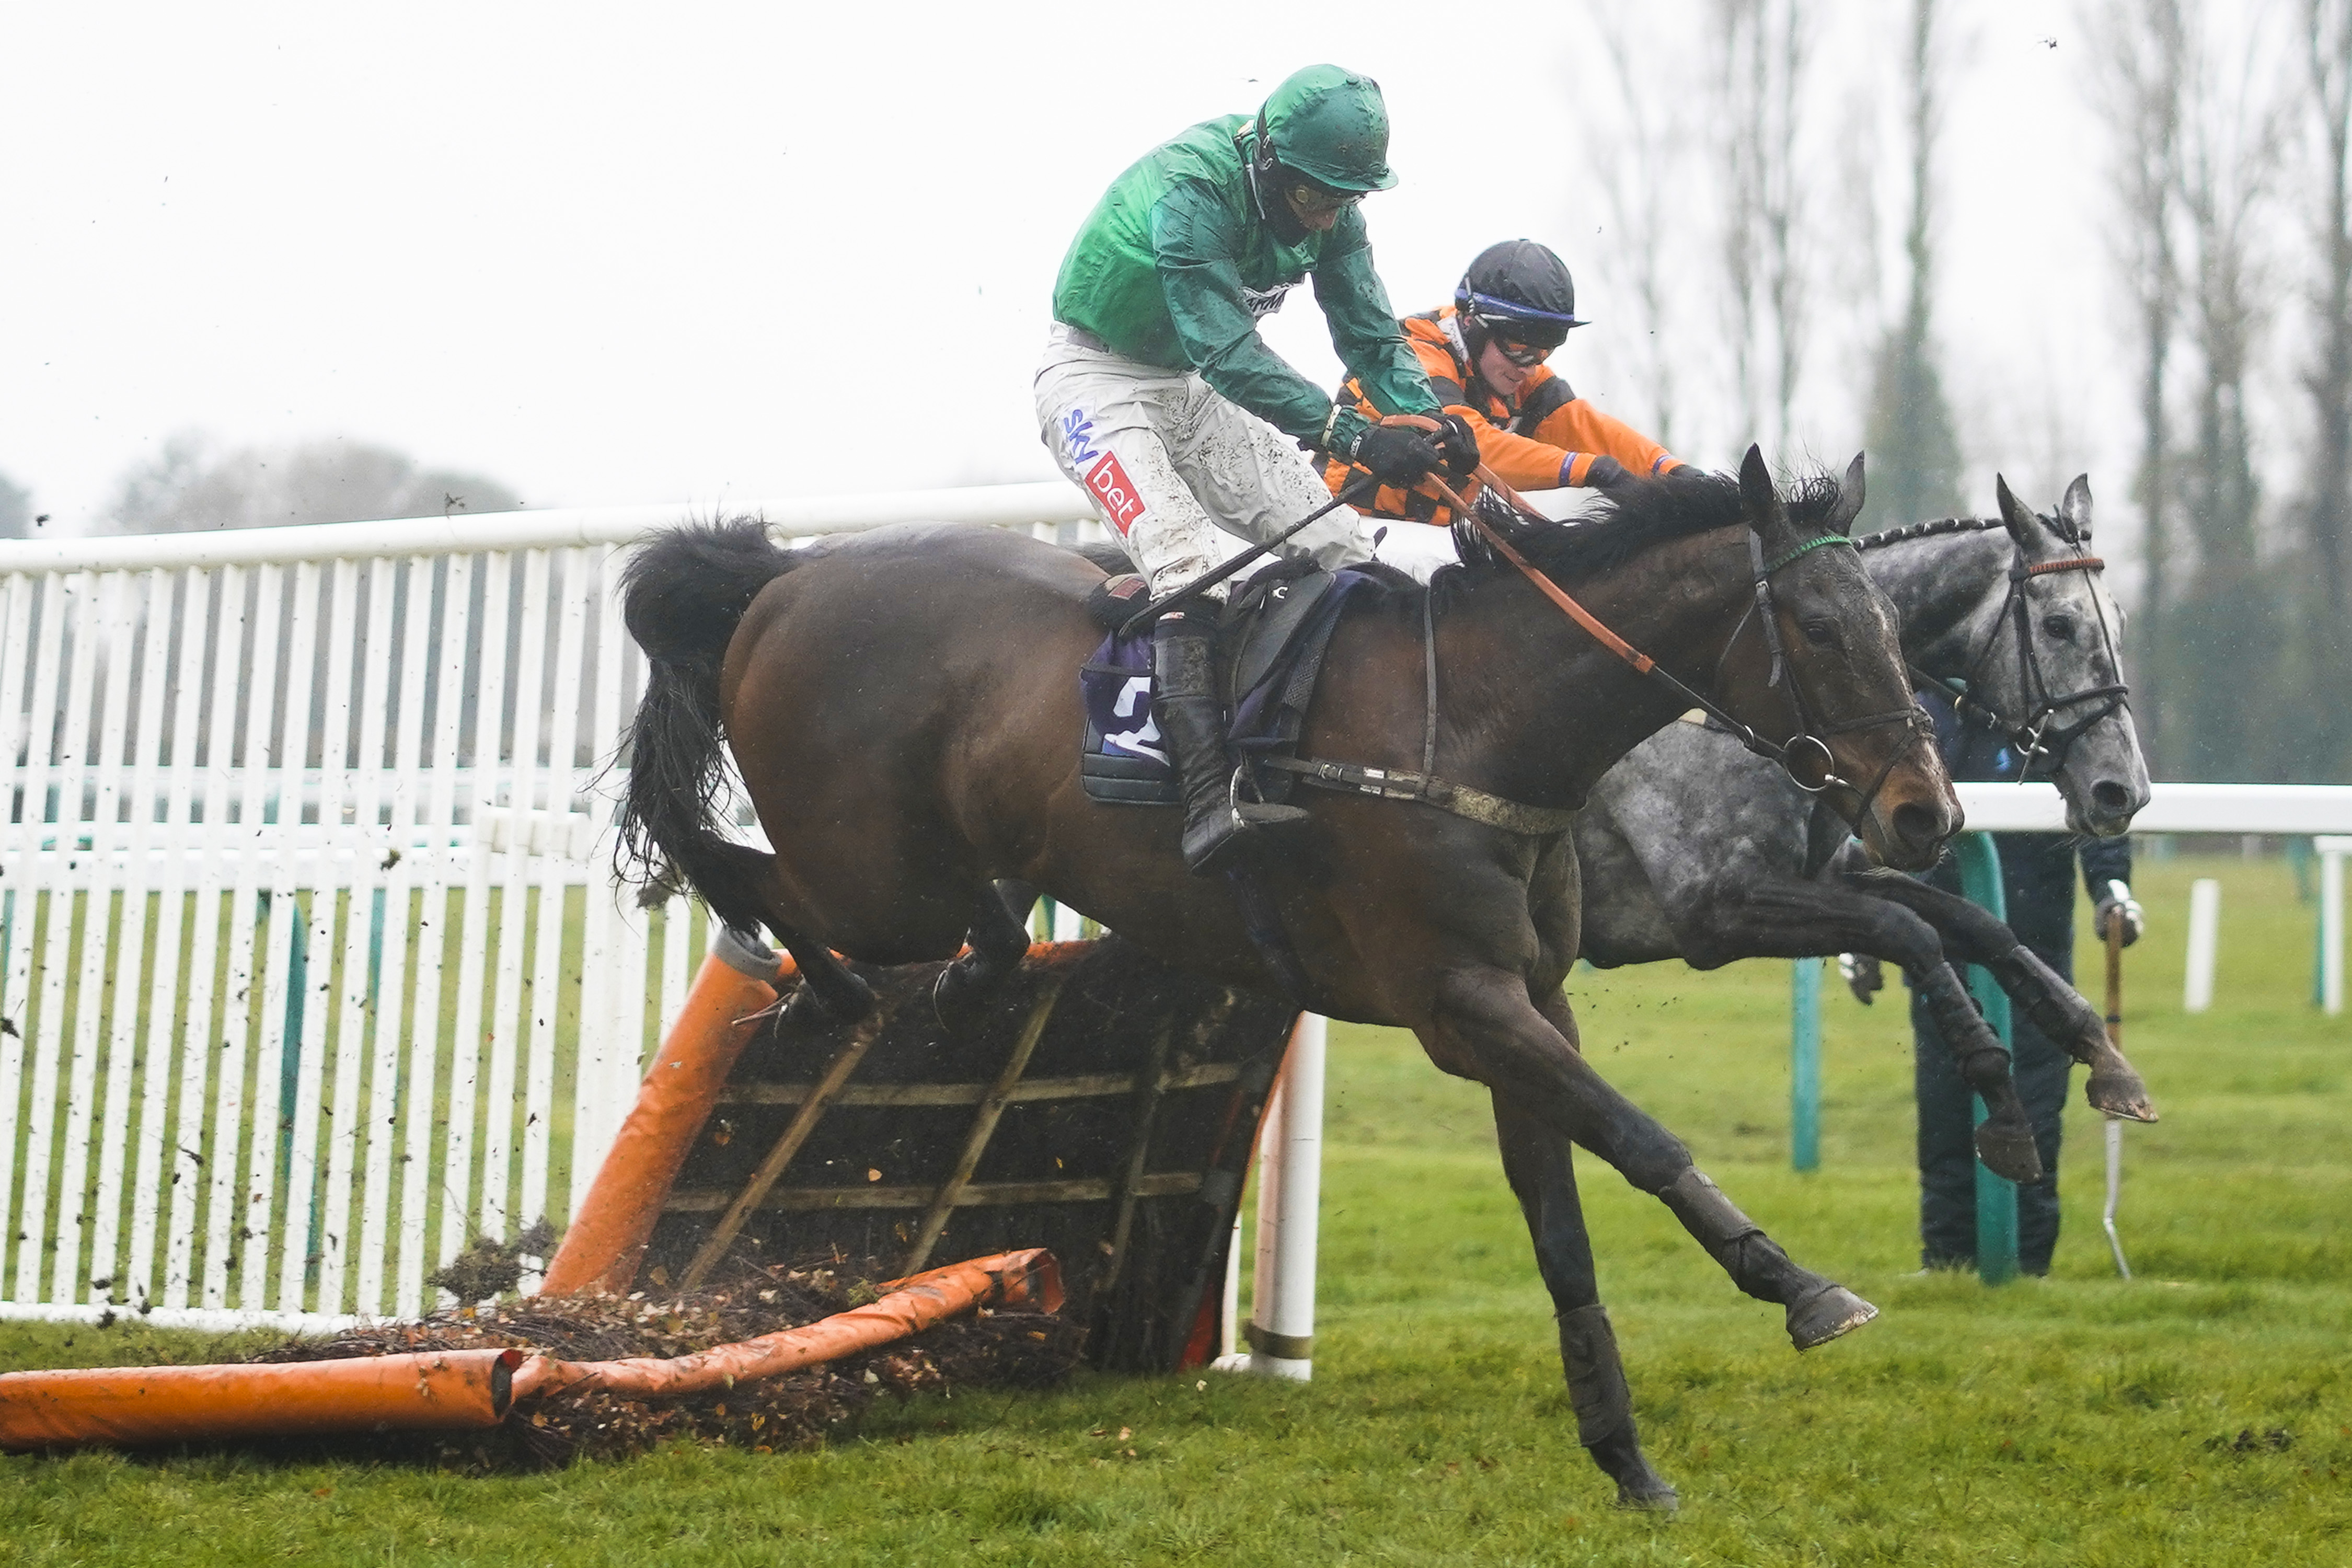 <p>FONTWELL, ENGLAND - MARCH 10: Daryl Jacob riding Valleres (green) clear the last to win The MansionBet Faller Insurance Novices' Hurdle at Fontwell Park Racecourse on March 10, 2021 in Fontwell, England. Due to the coronavirus pandemic, owners along with the paying public will not be allowed to attend the meeting. (Photo by Alan Crowhurst/Getty Images)</p>